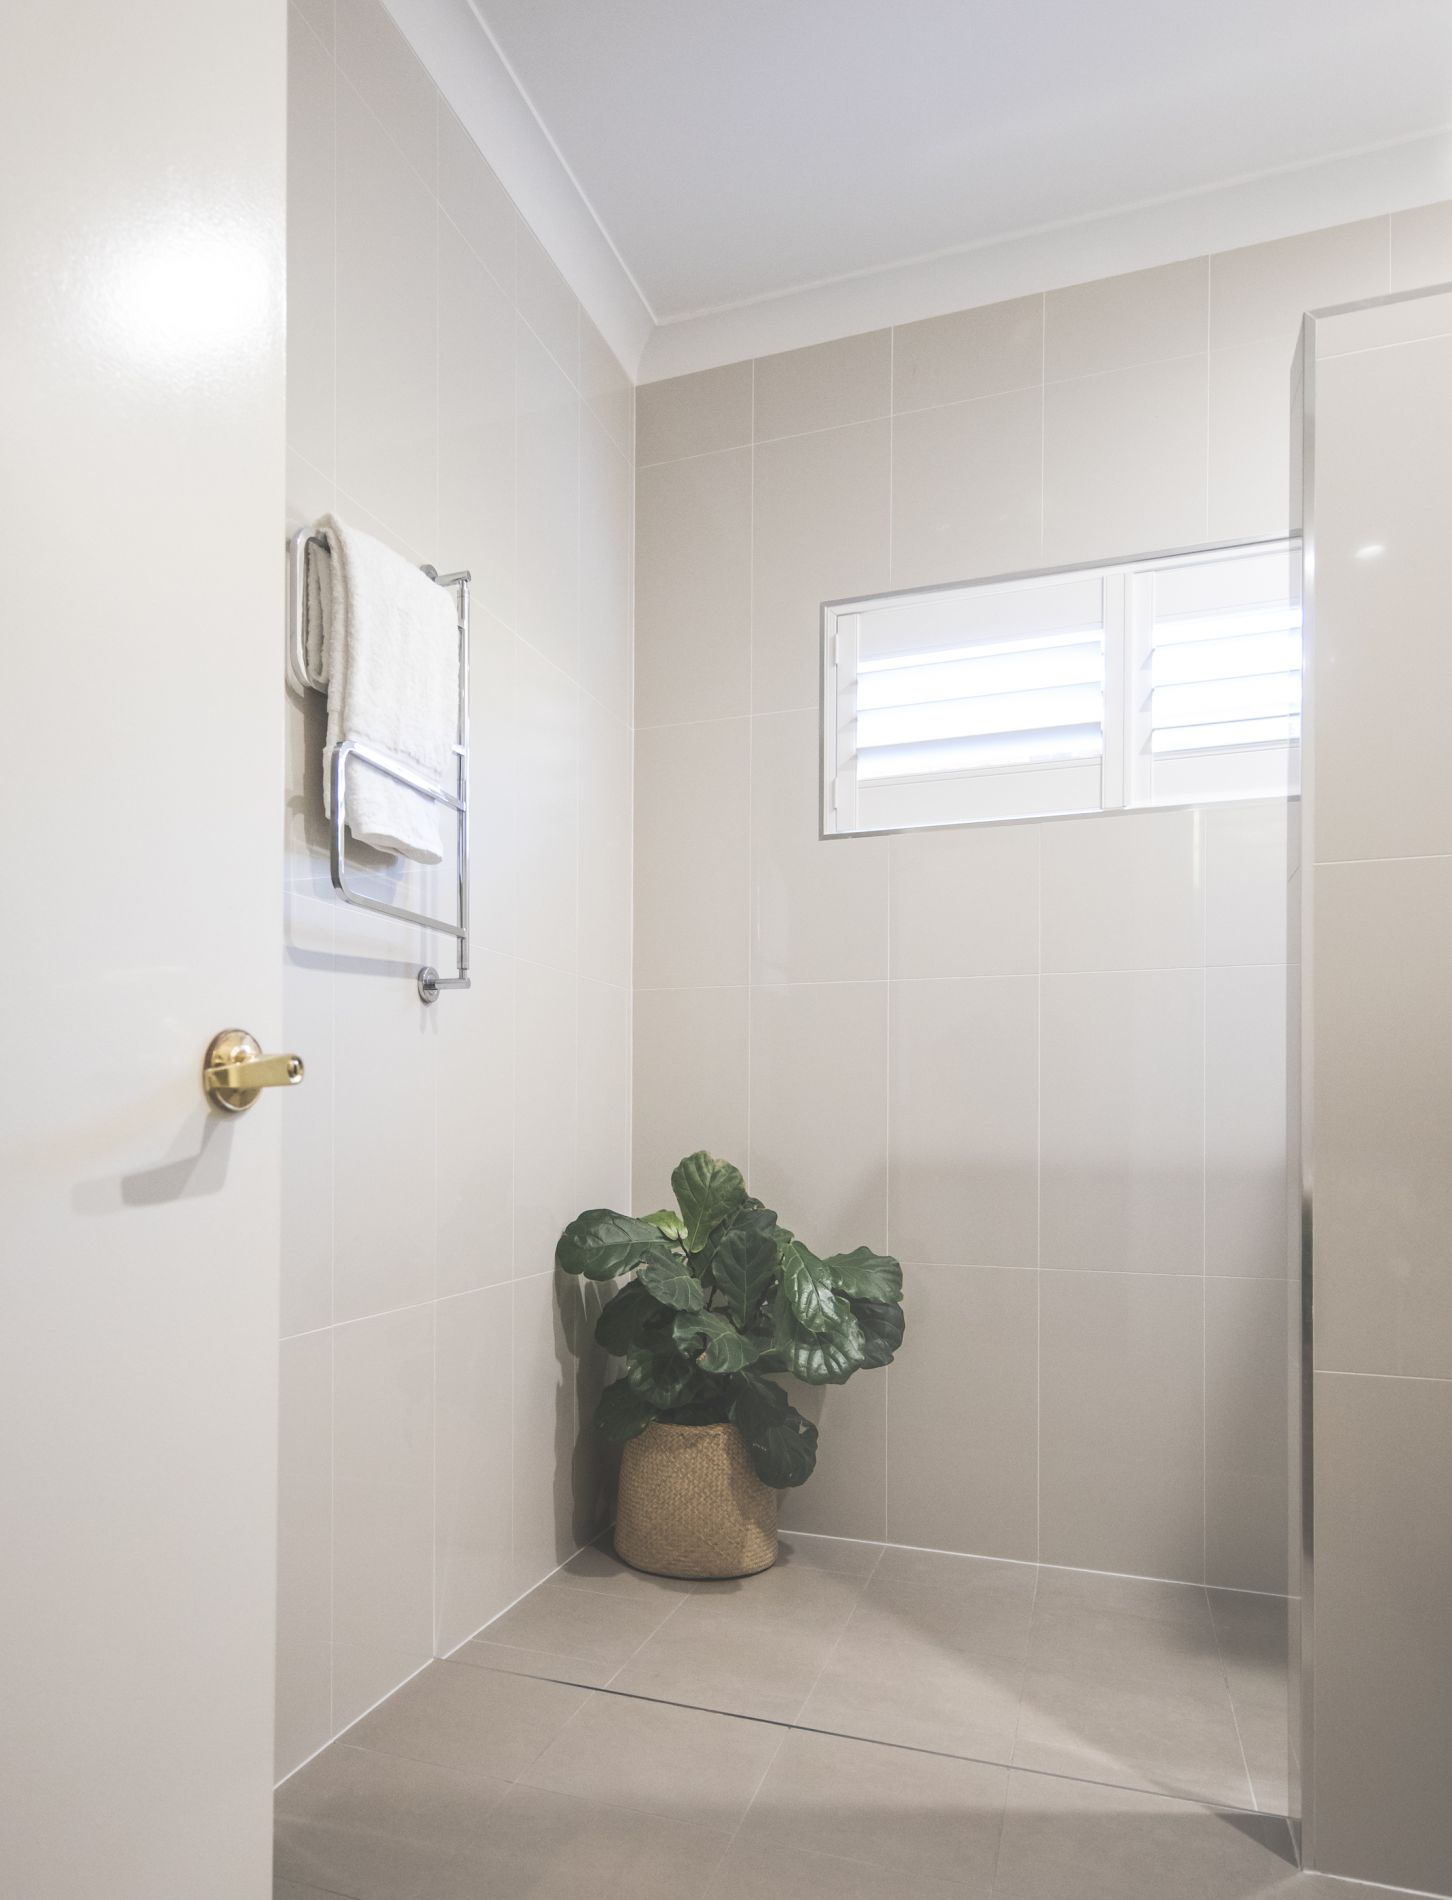 Bathroom with a fiddle leaf fig pot plant in the shower and towel warmer on wall